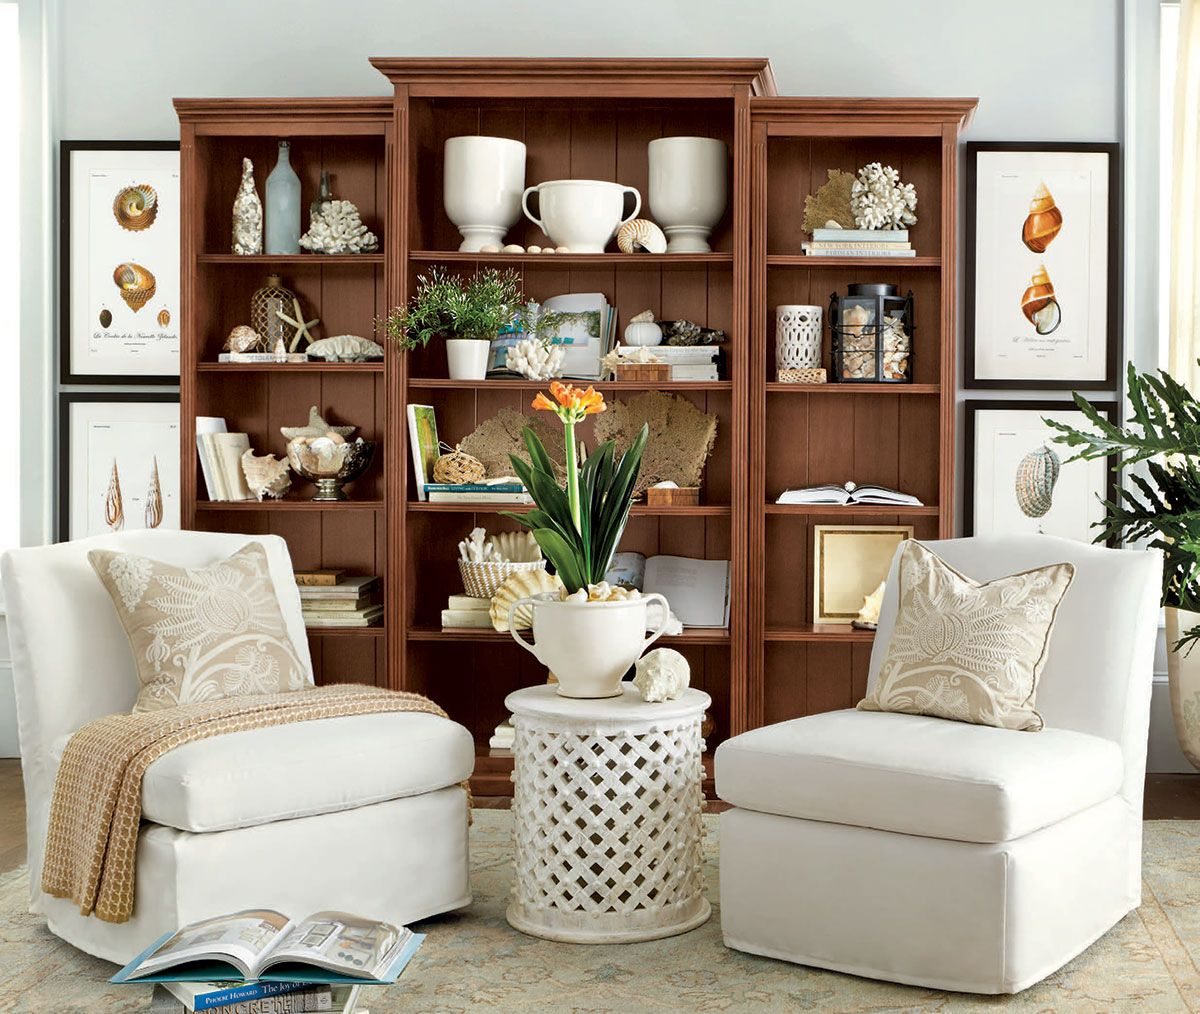 Storage Space Decorating And Organizing Ideas